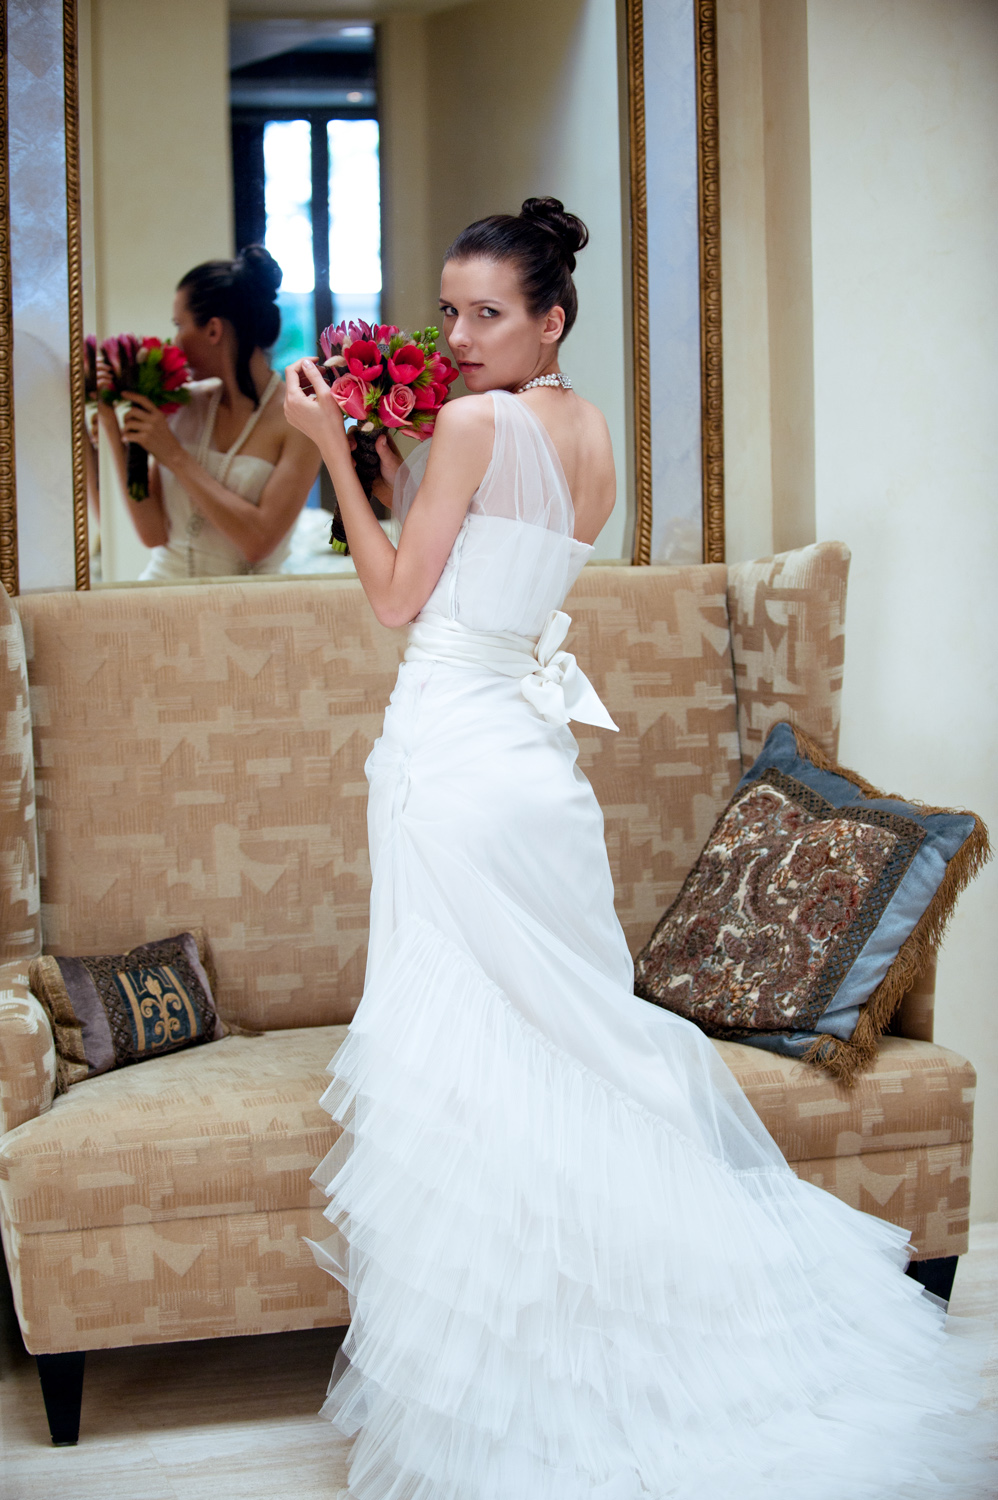 Bridal Fashion Photograhy 026.jpg